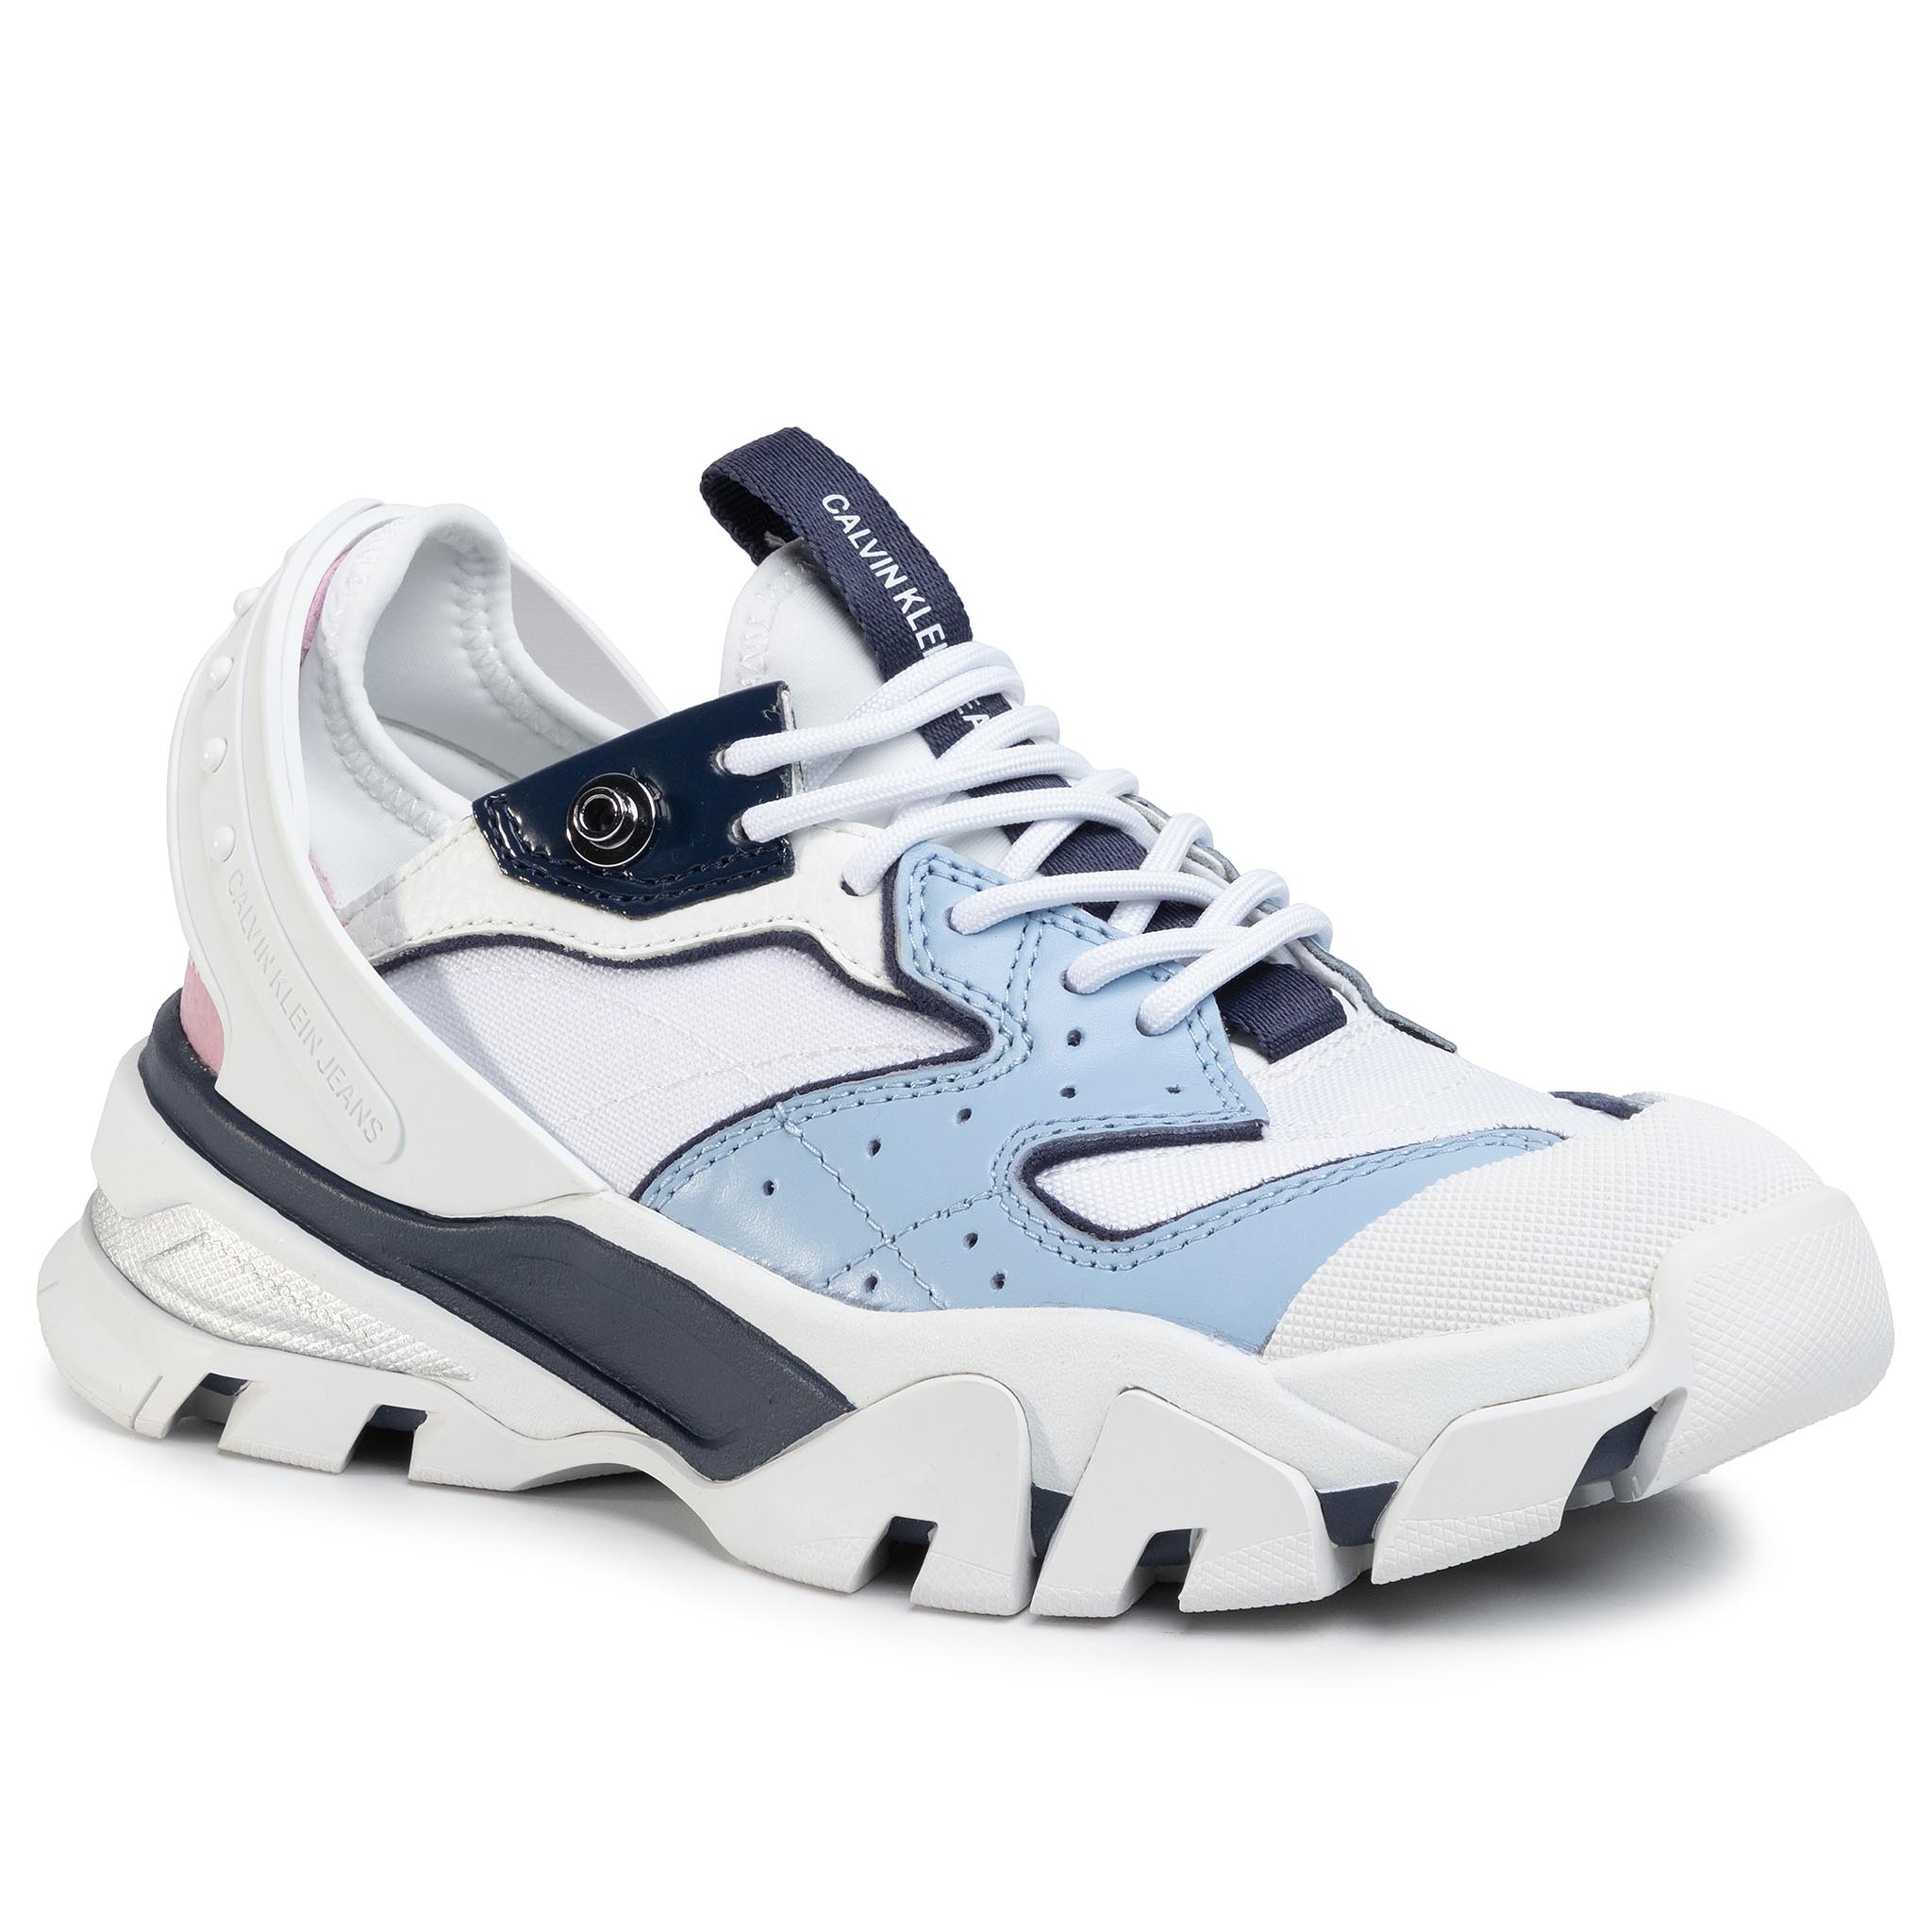 Sneakers CALVIN KLEIN JEANS - Clarice B4R0883 White/Chambray Blue